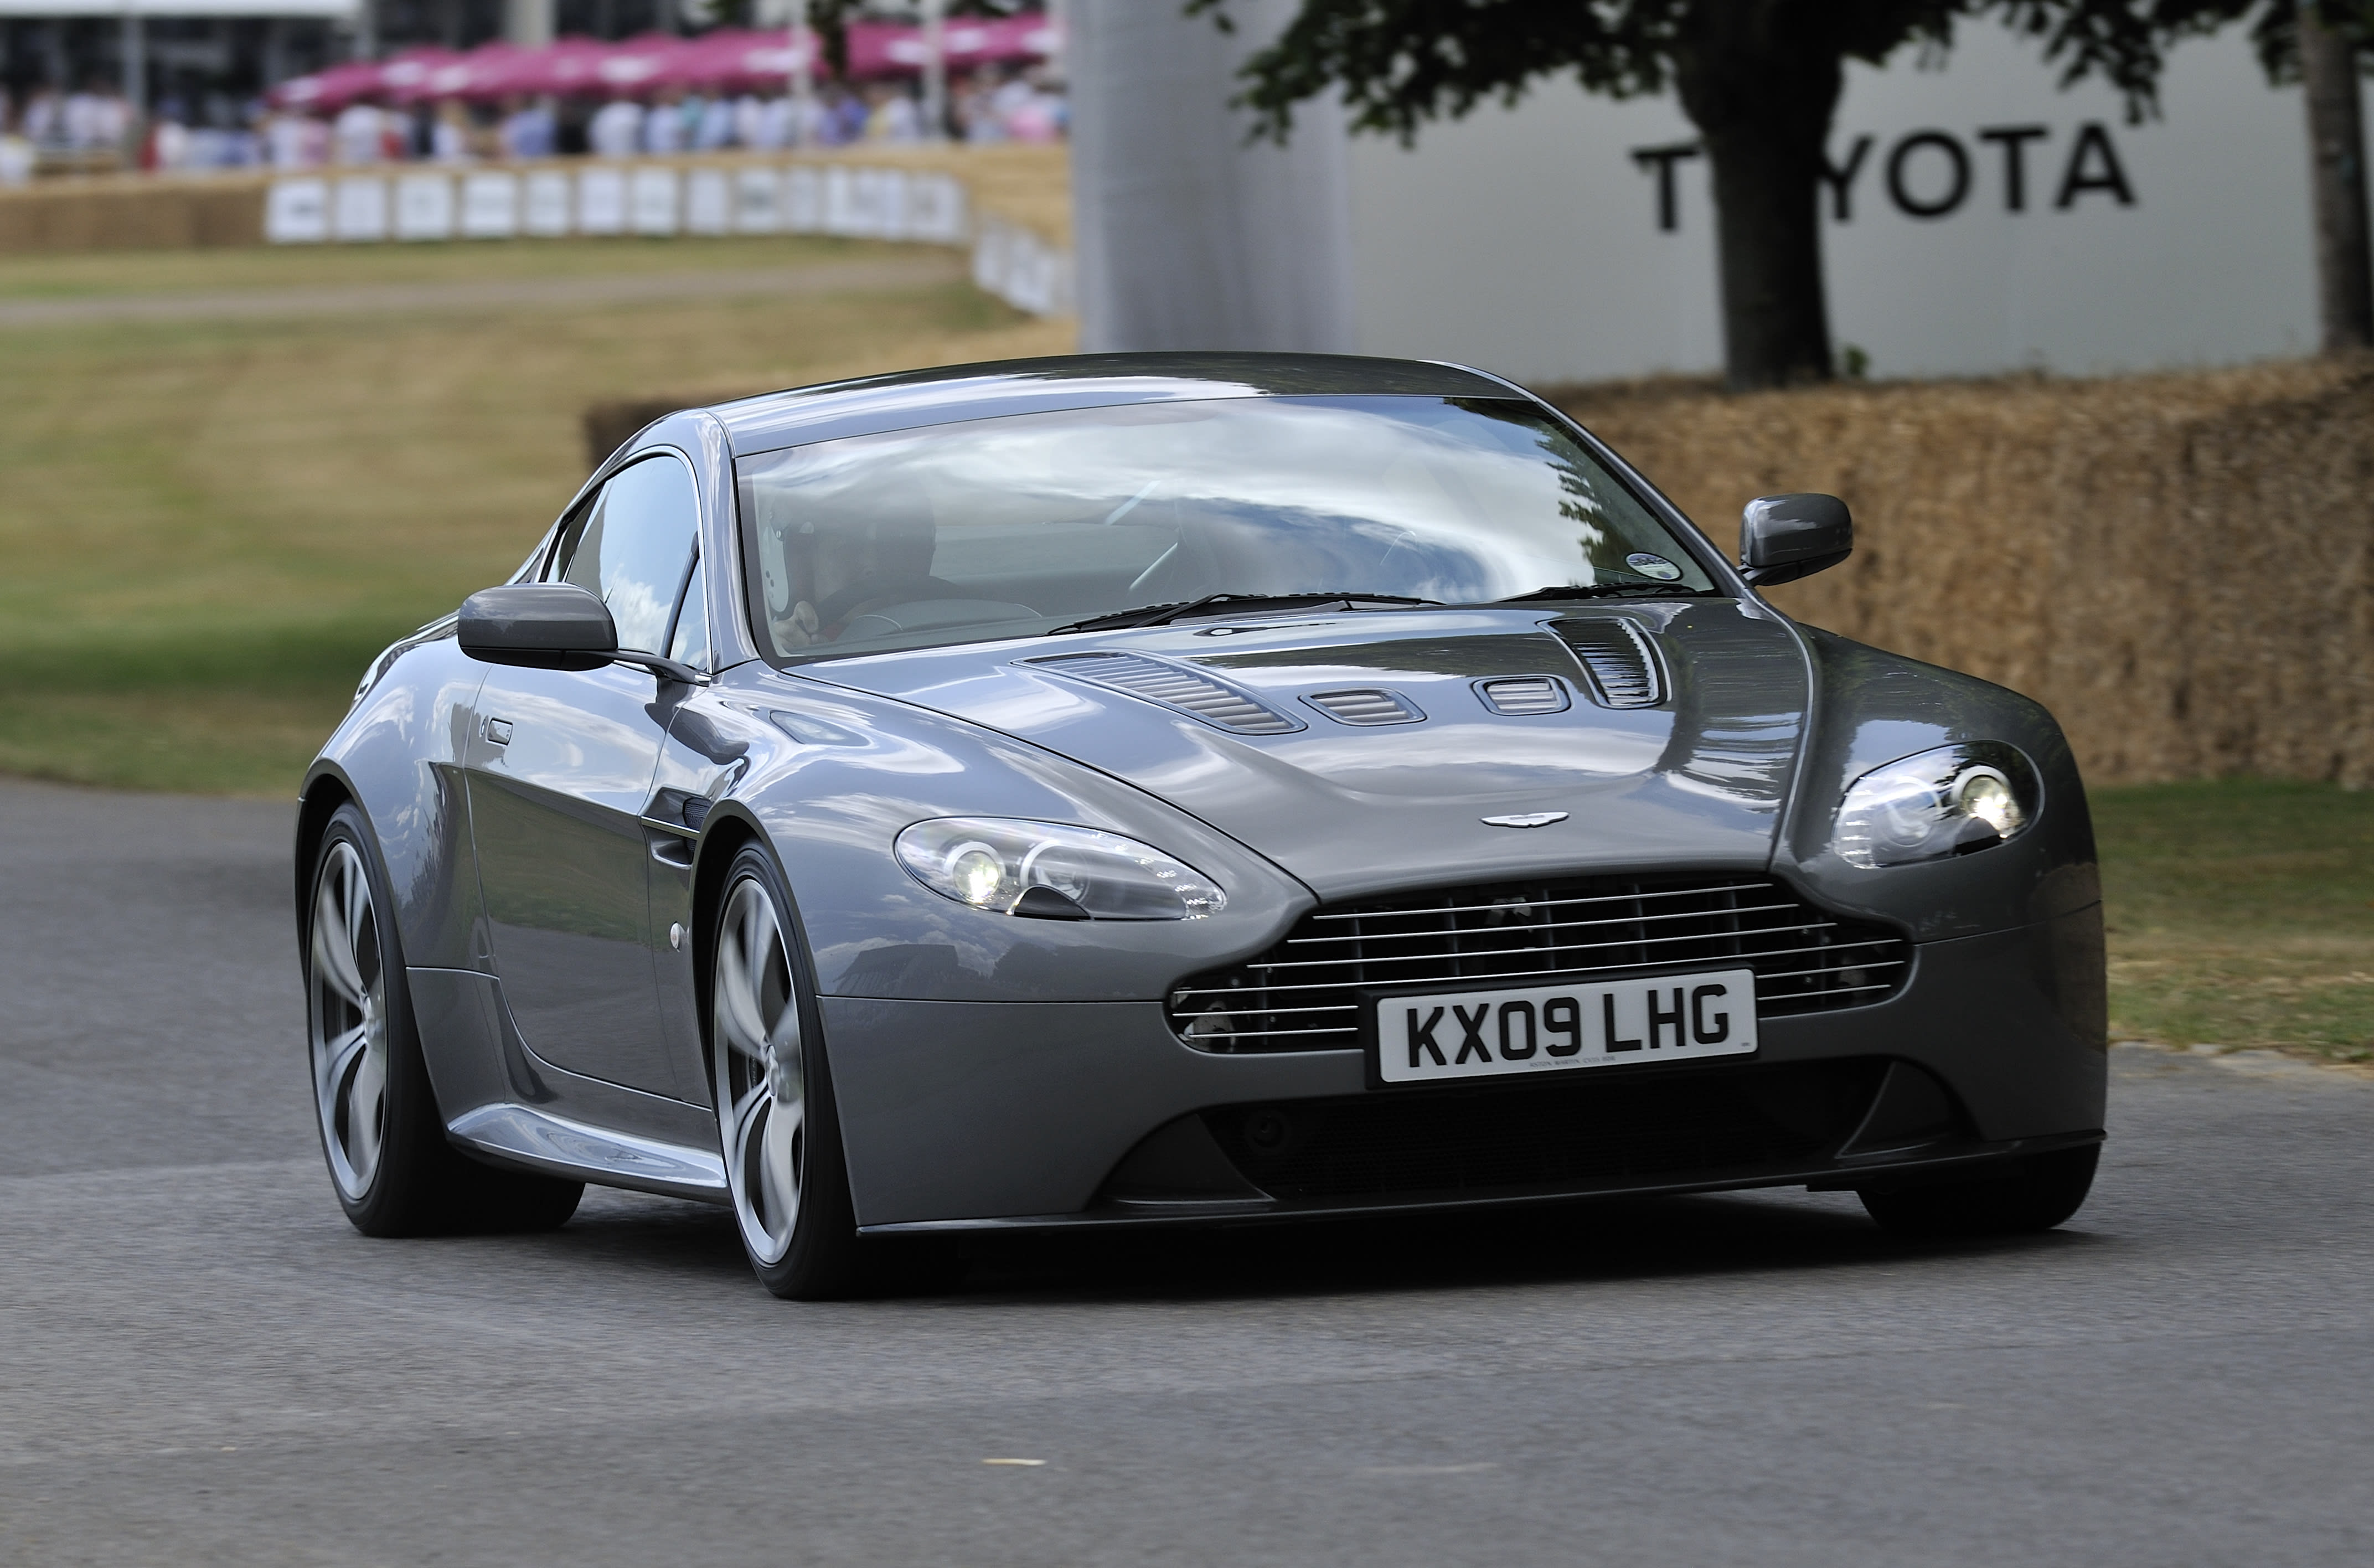 Aston Martin recalls sports cars with faulty software